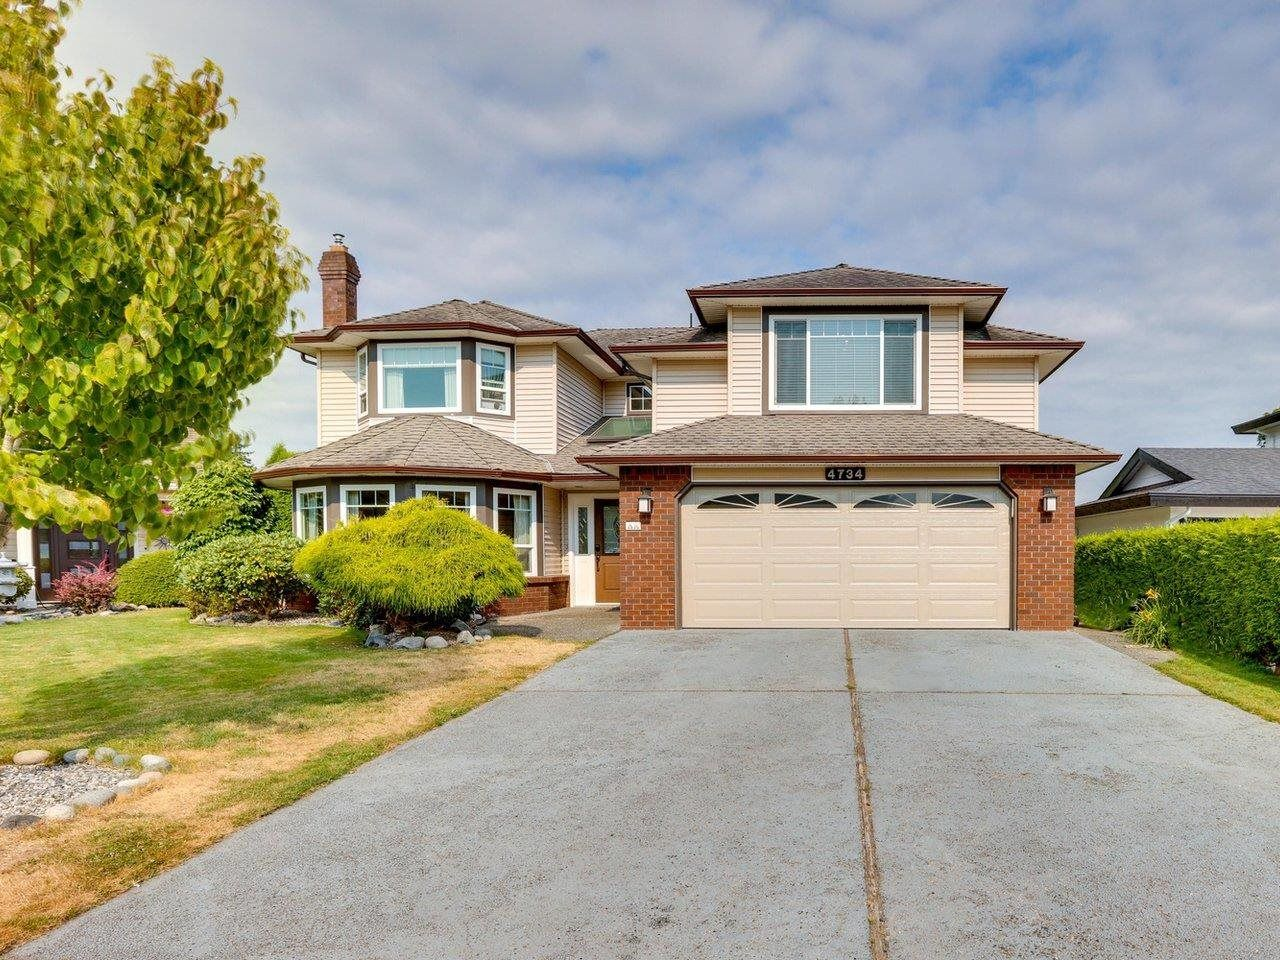 Main Photo: 4734 54 Street in Delta: Delta Manor House for sale (Ladner)  : MLS®# R2600512